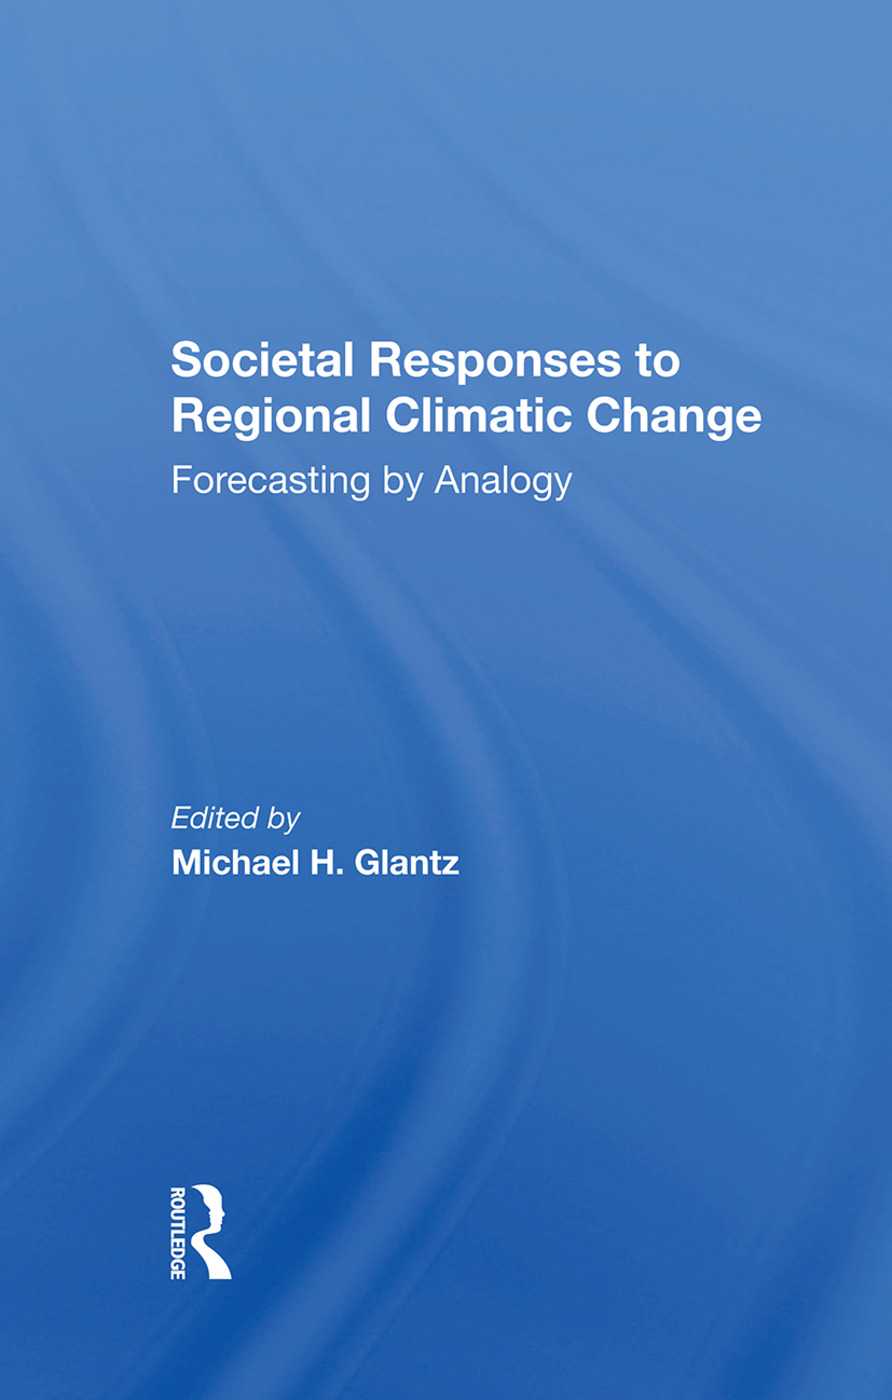 Societal Responses To Regional Climatic Change: Forecasting By Analogy book cover